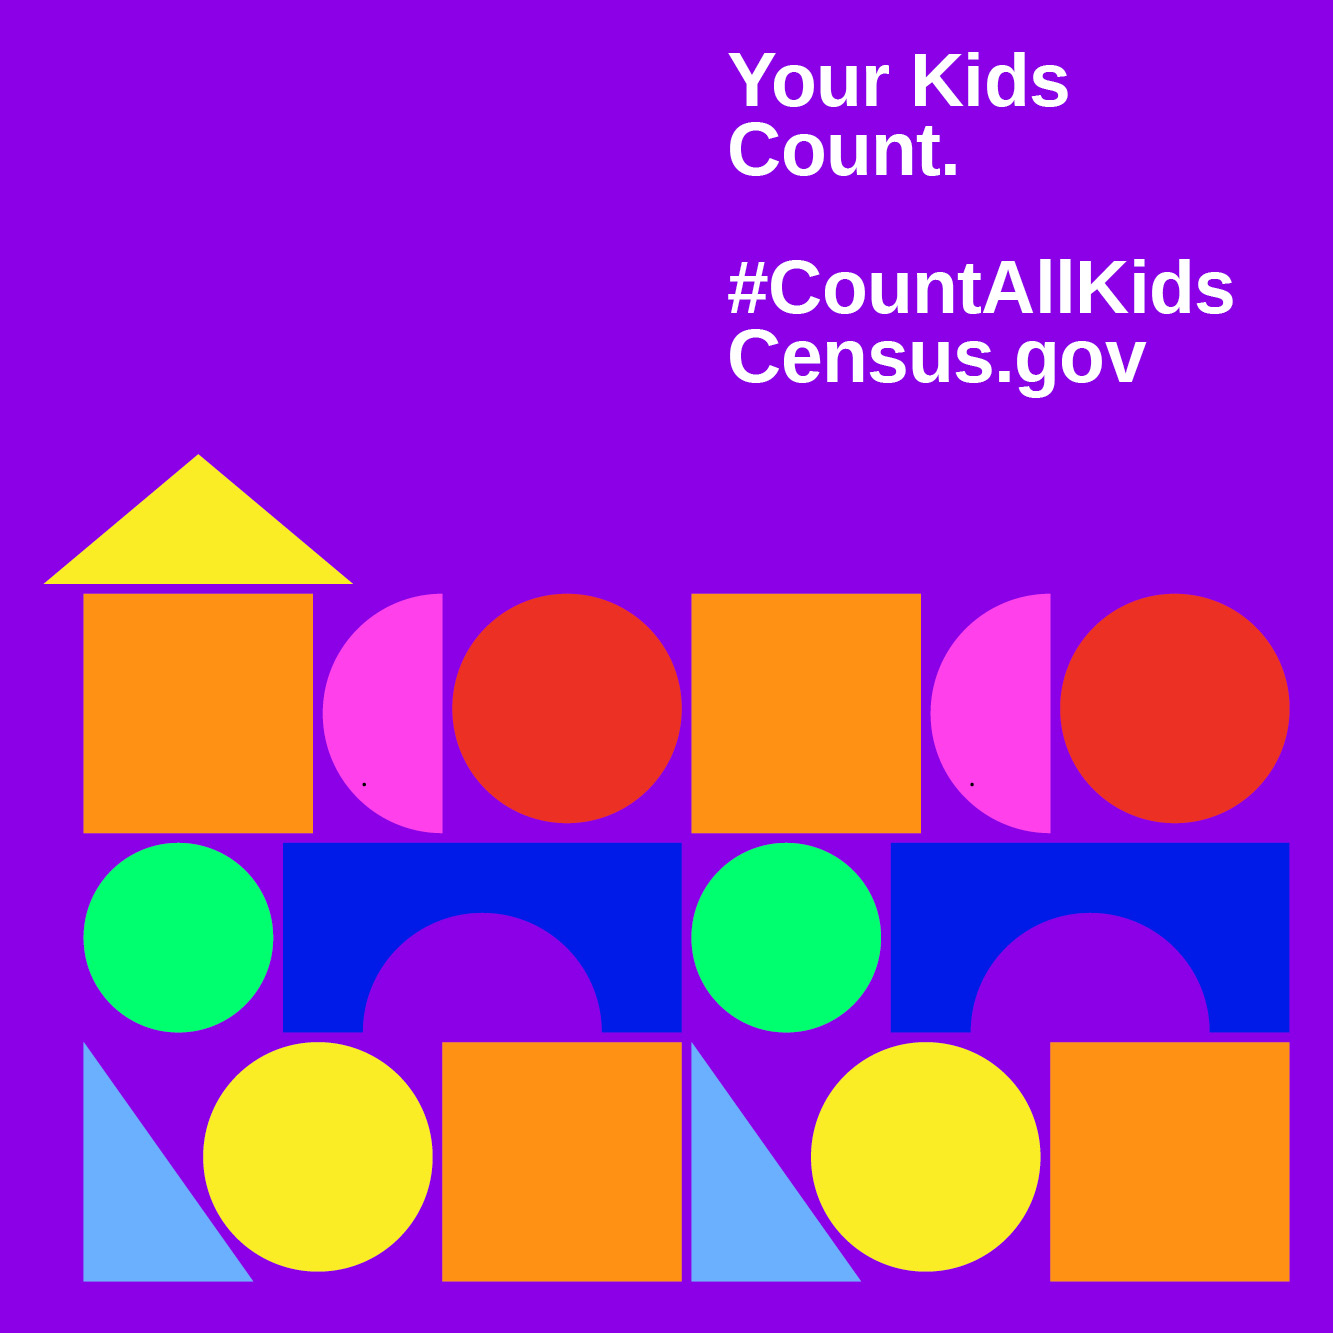 Your Kids Count